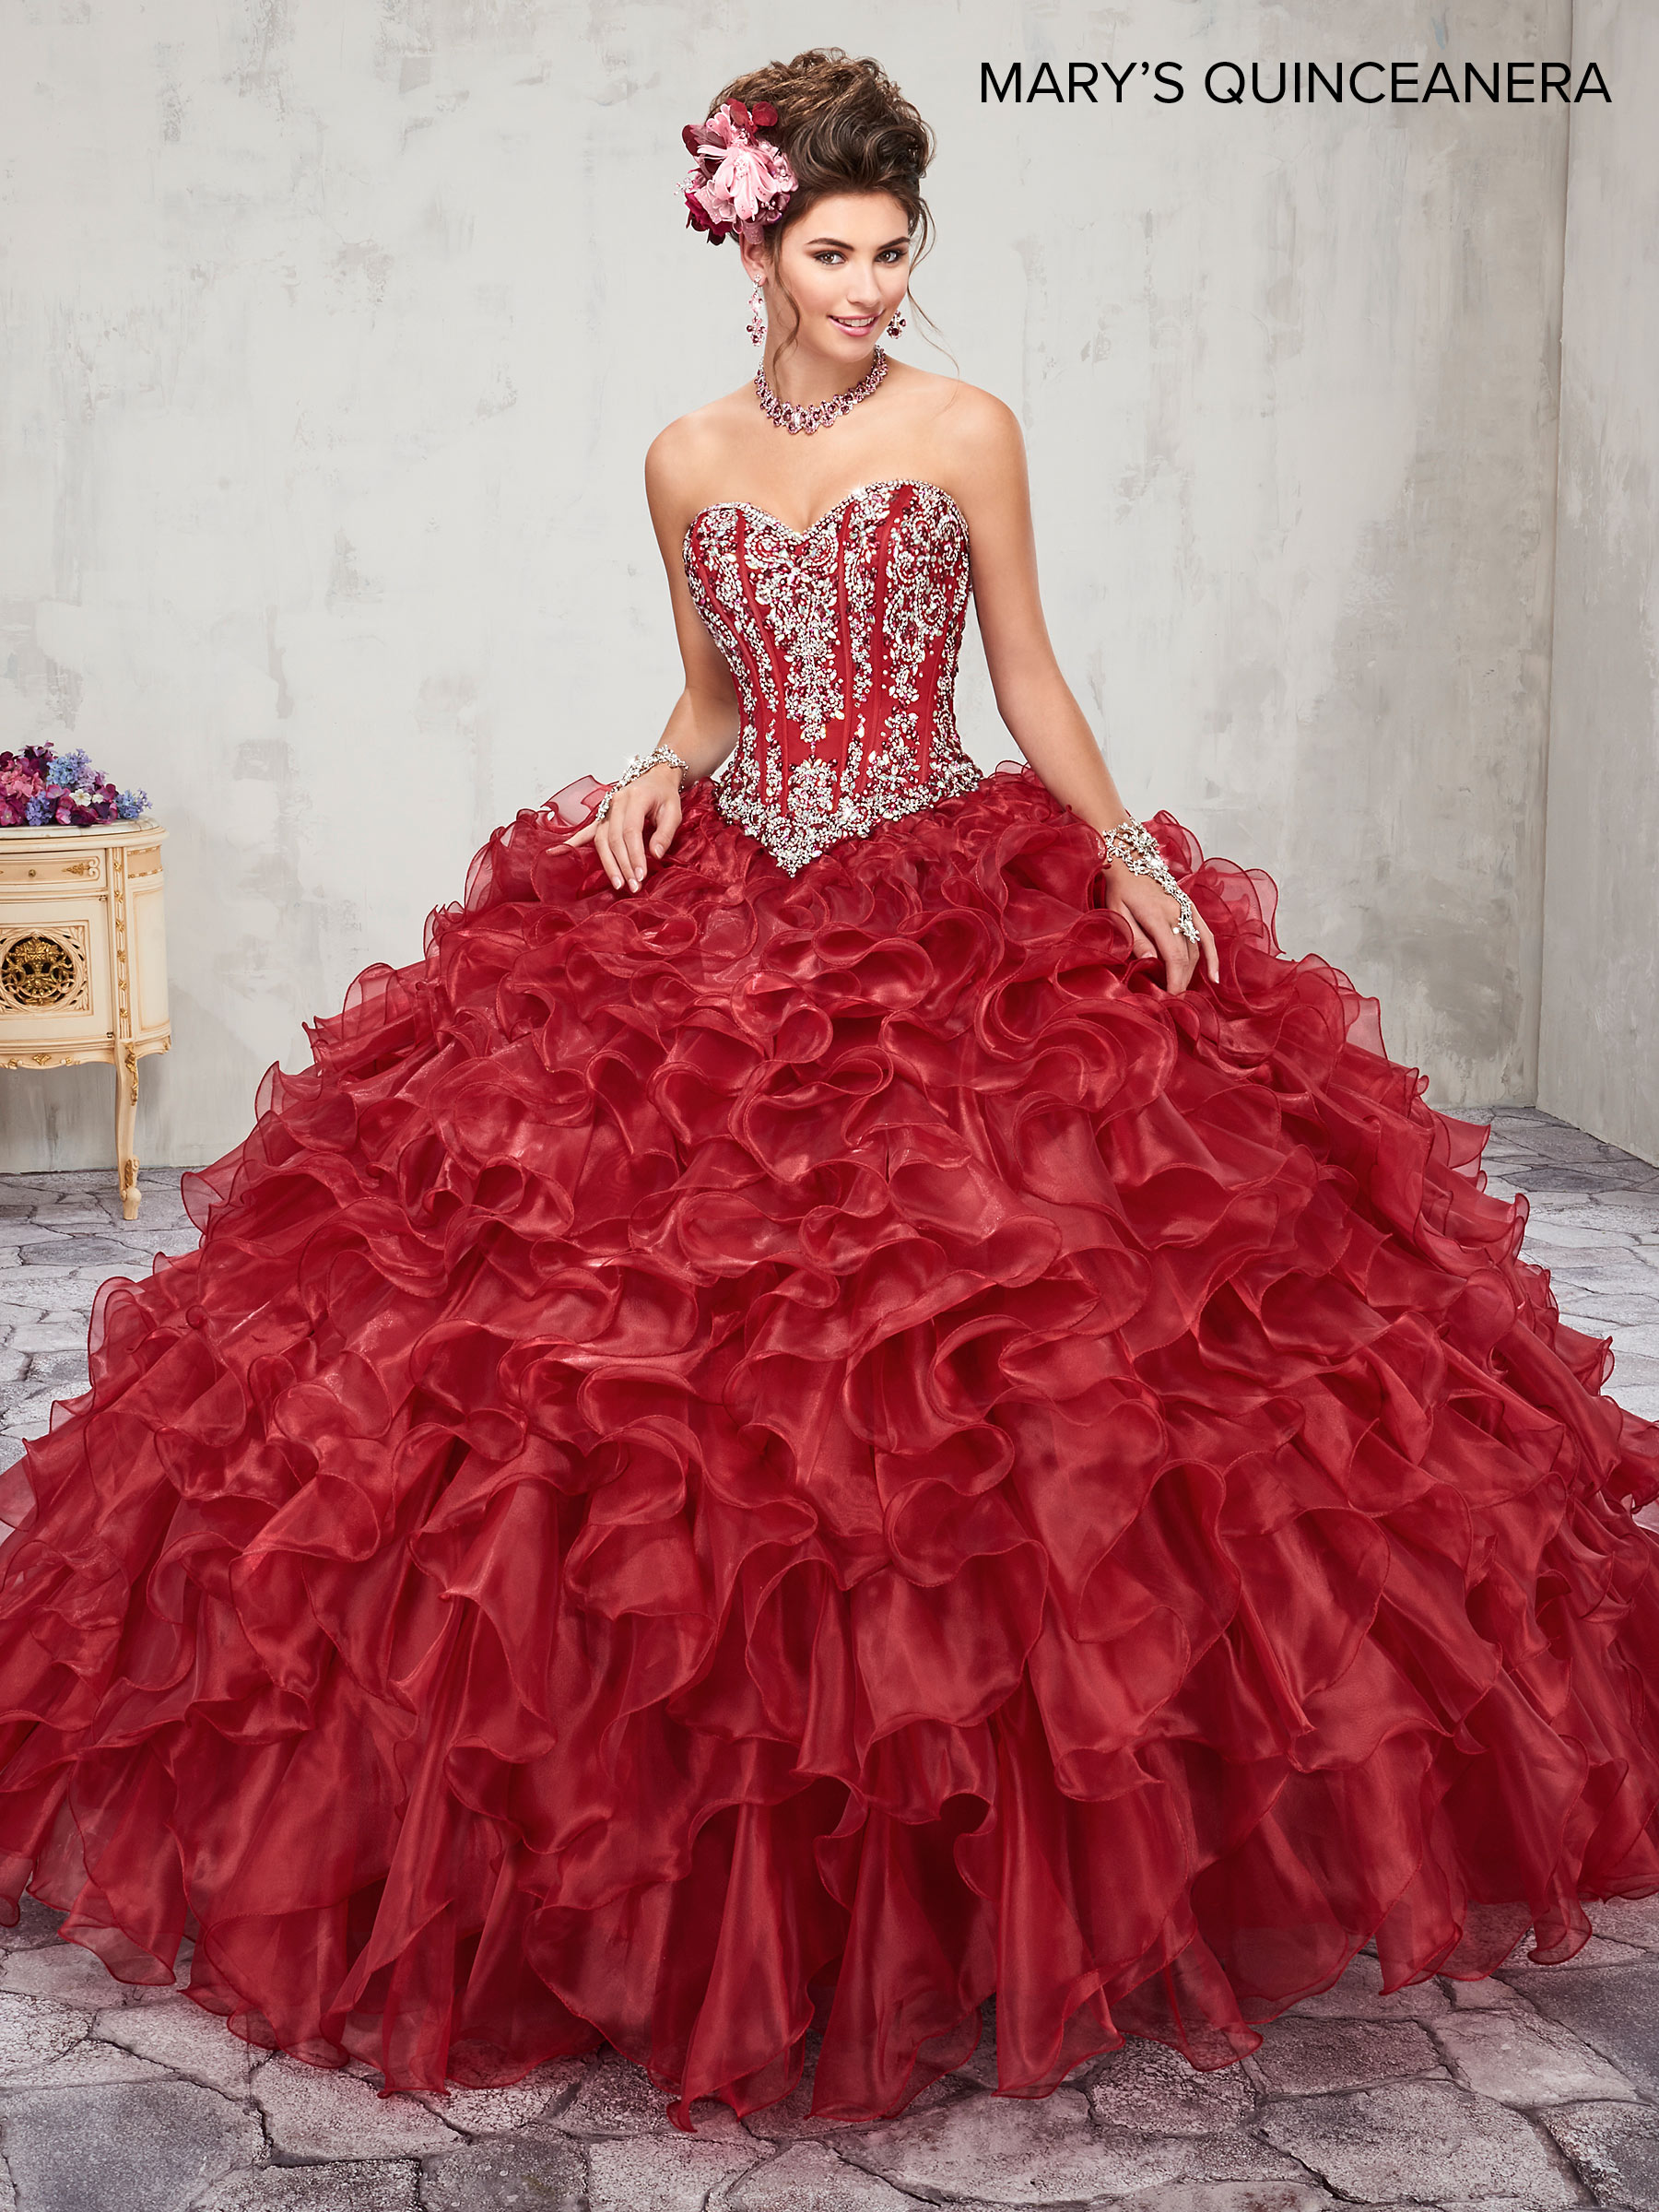 Marys Quinceanera Dresses | Mary's Quinceanera | Style - MQ2017